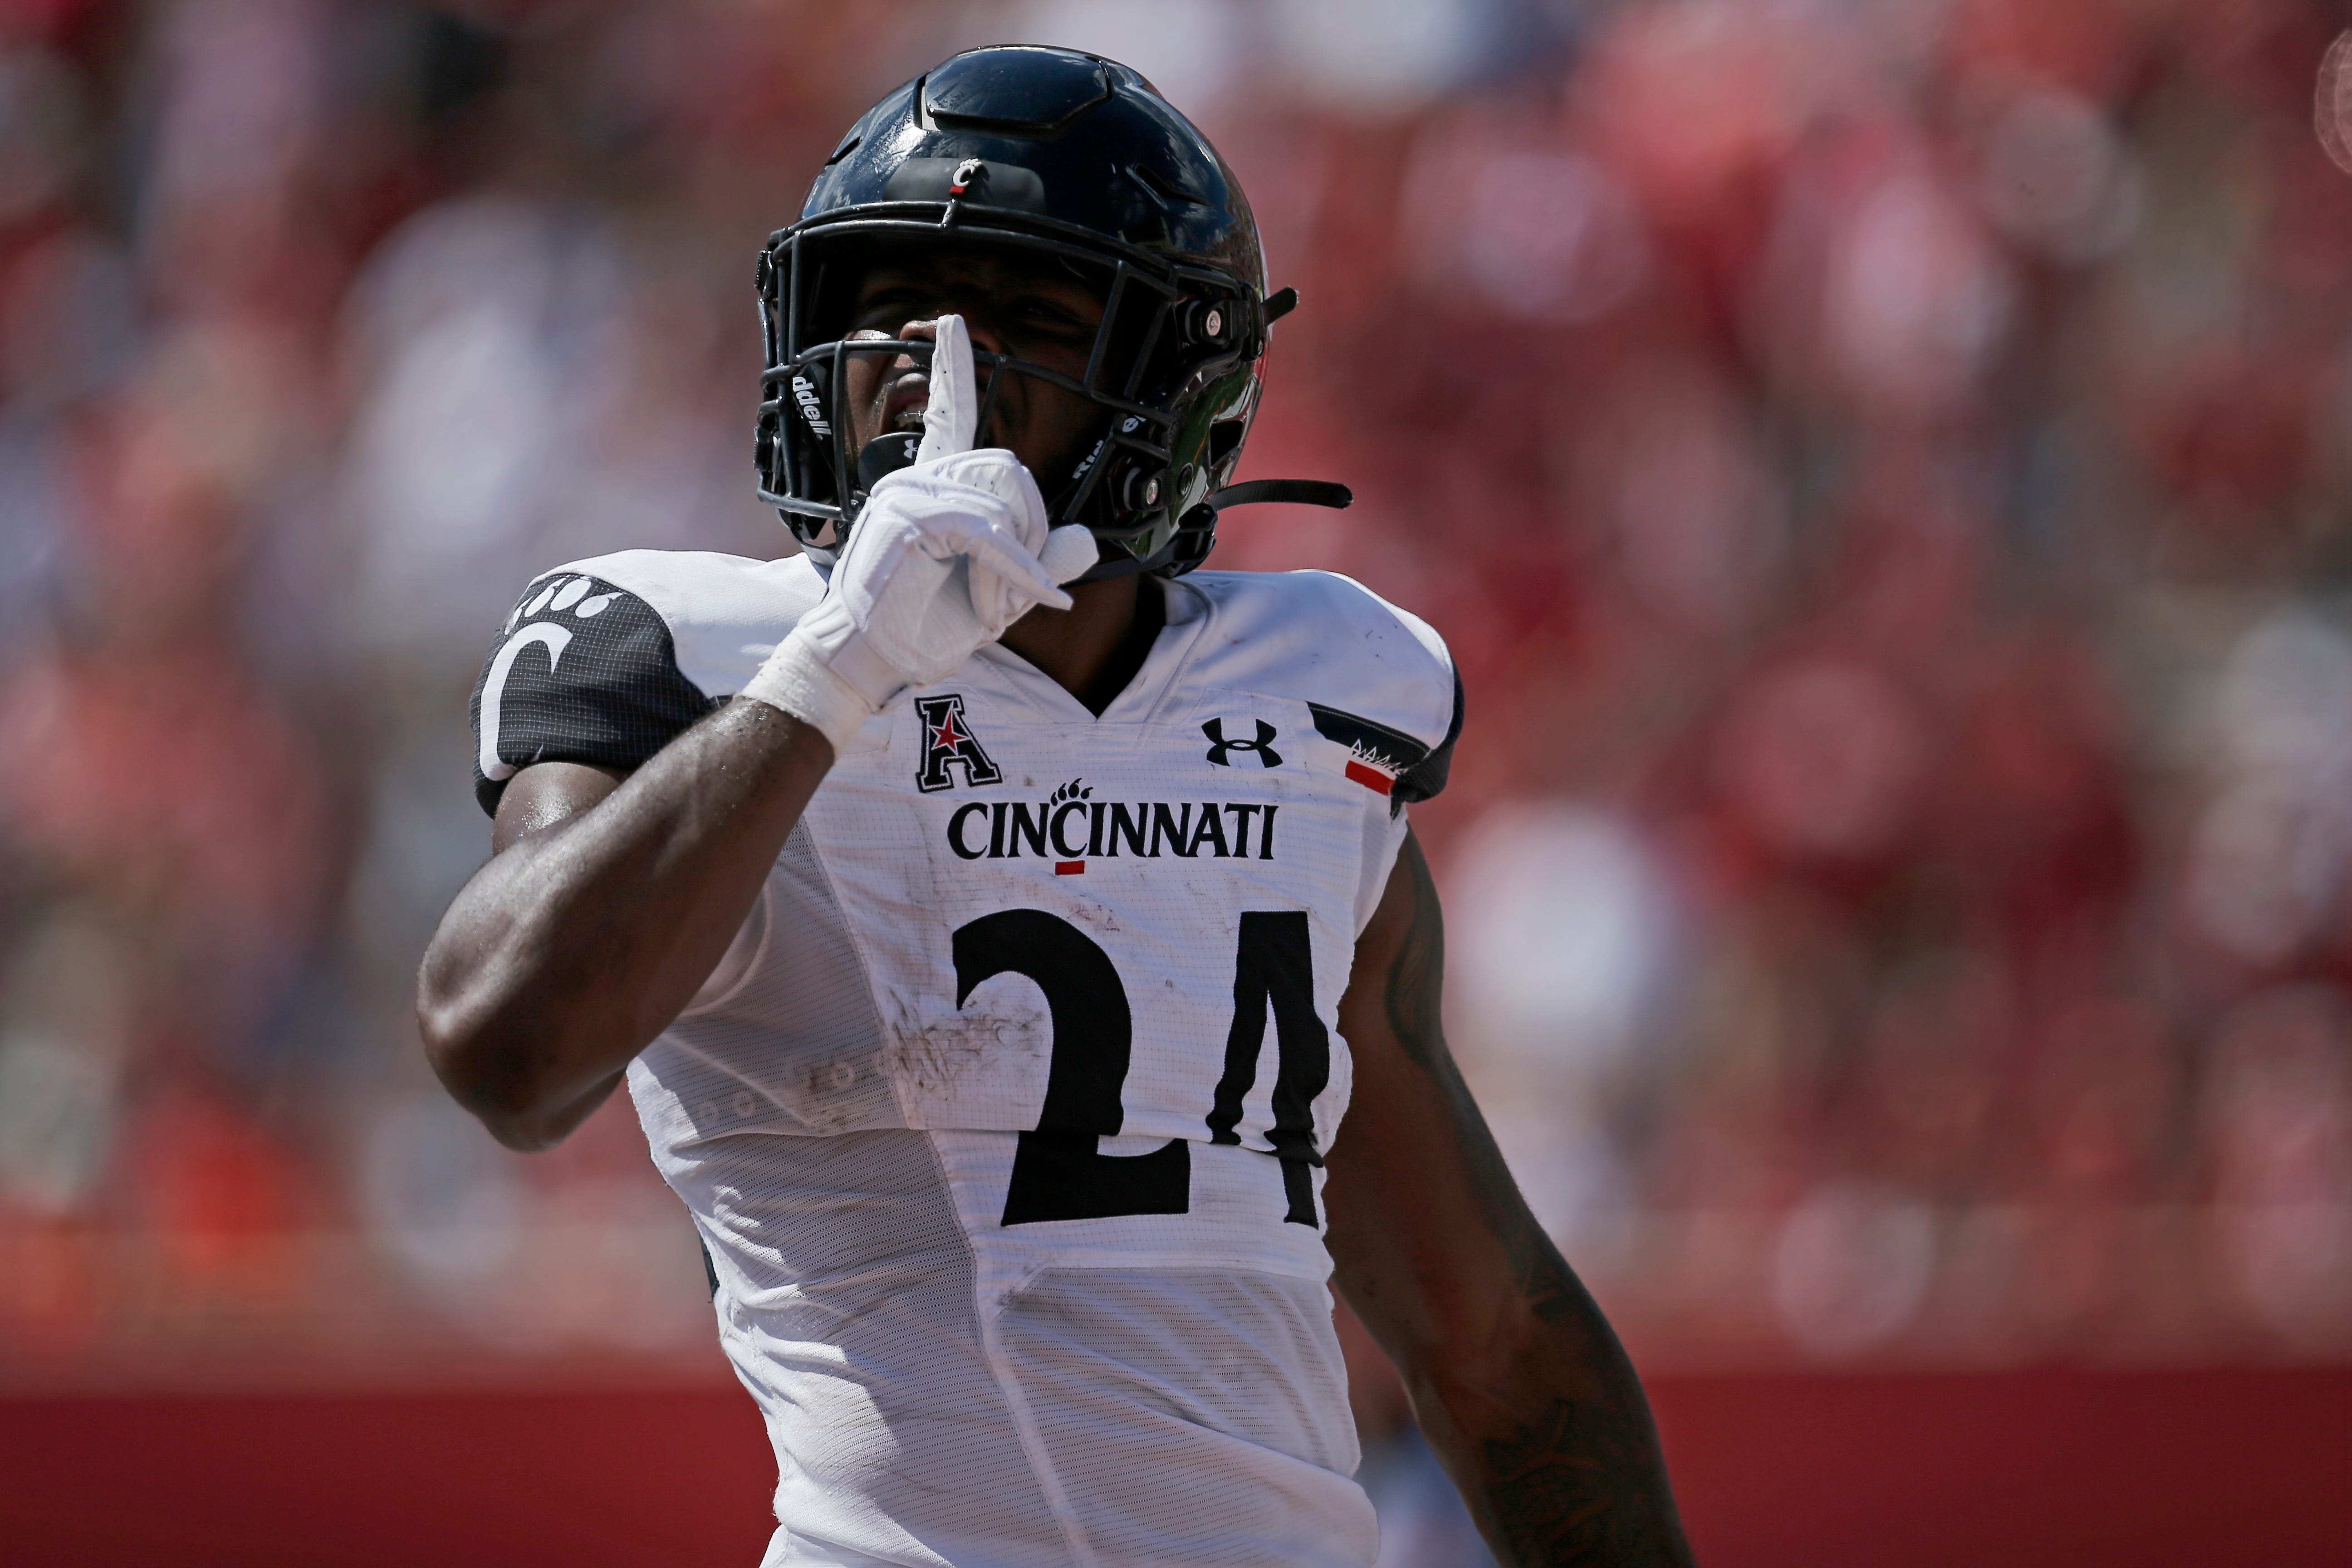 Follow live: No. 2 Cincinnati looks to stay unbeaten, capture first-ever win at Navy